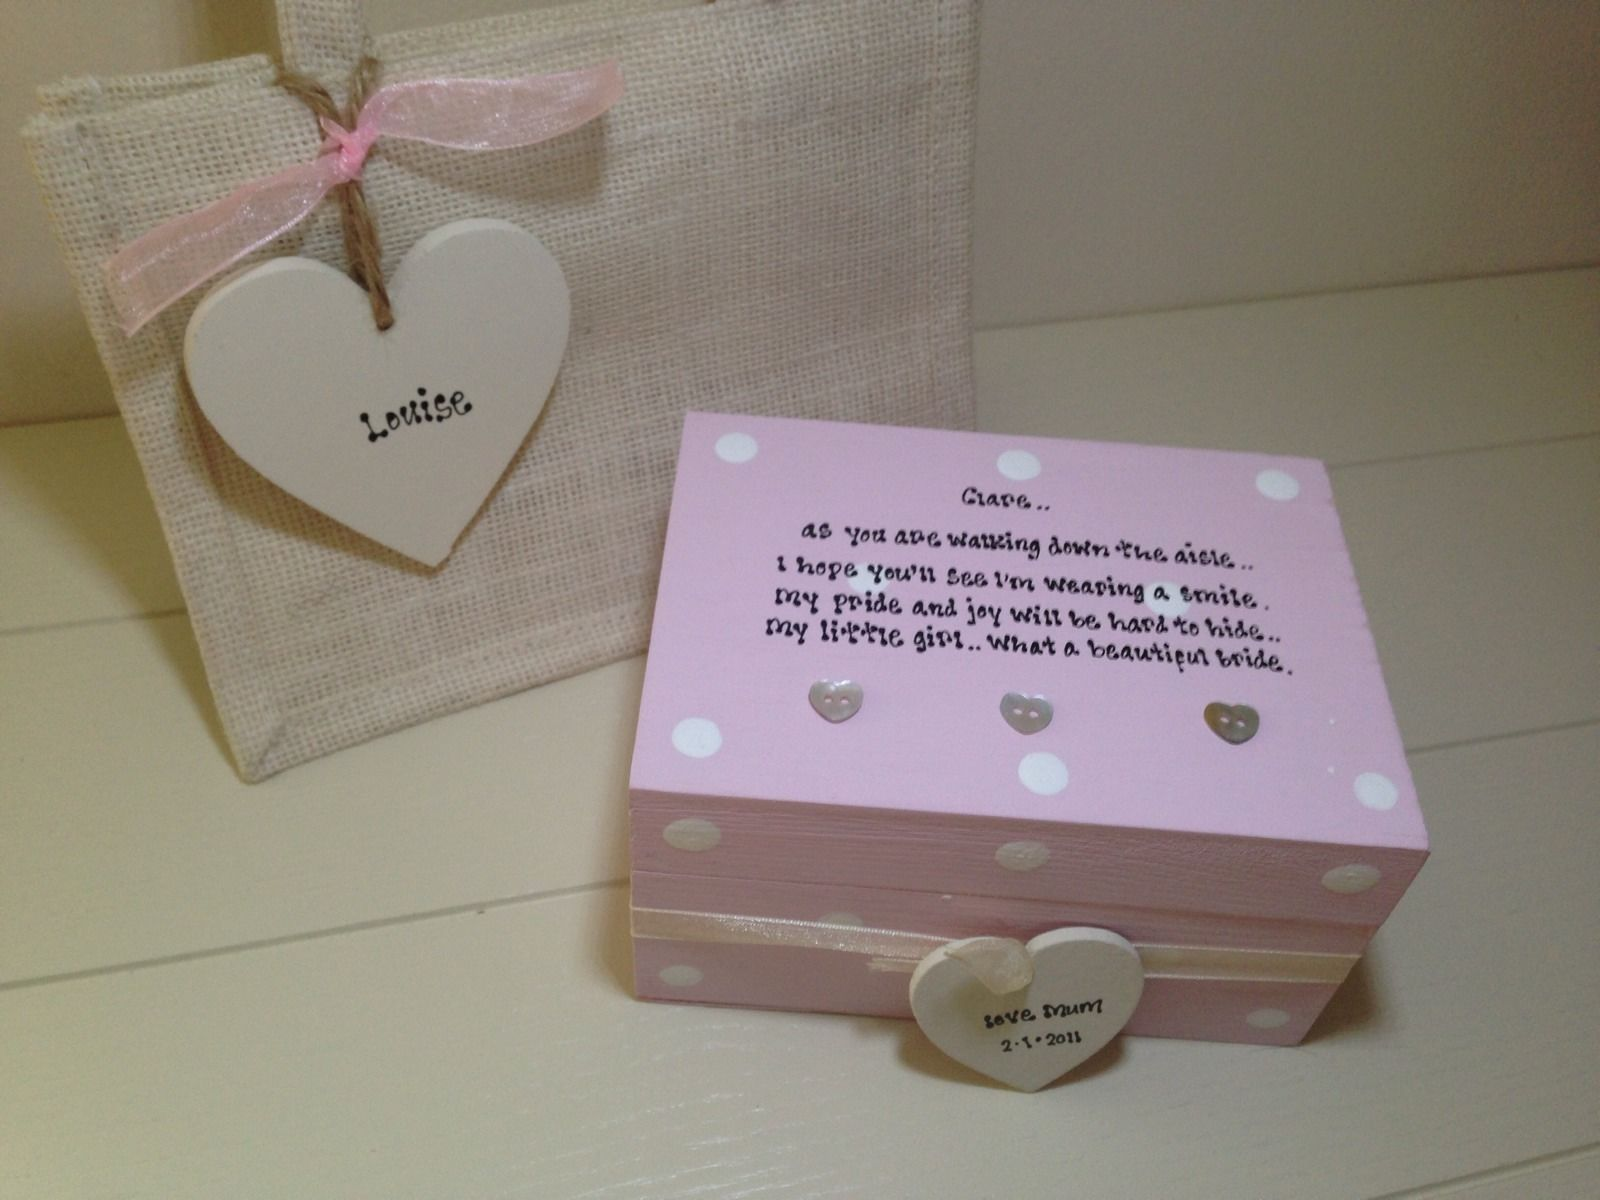 Wedding Gifts For Your Daughter : Ideas Gifts From Mother To Daughter On Wedding Day shabby personalised ...